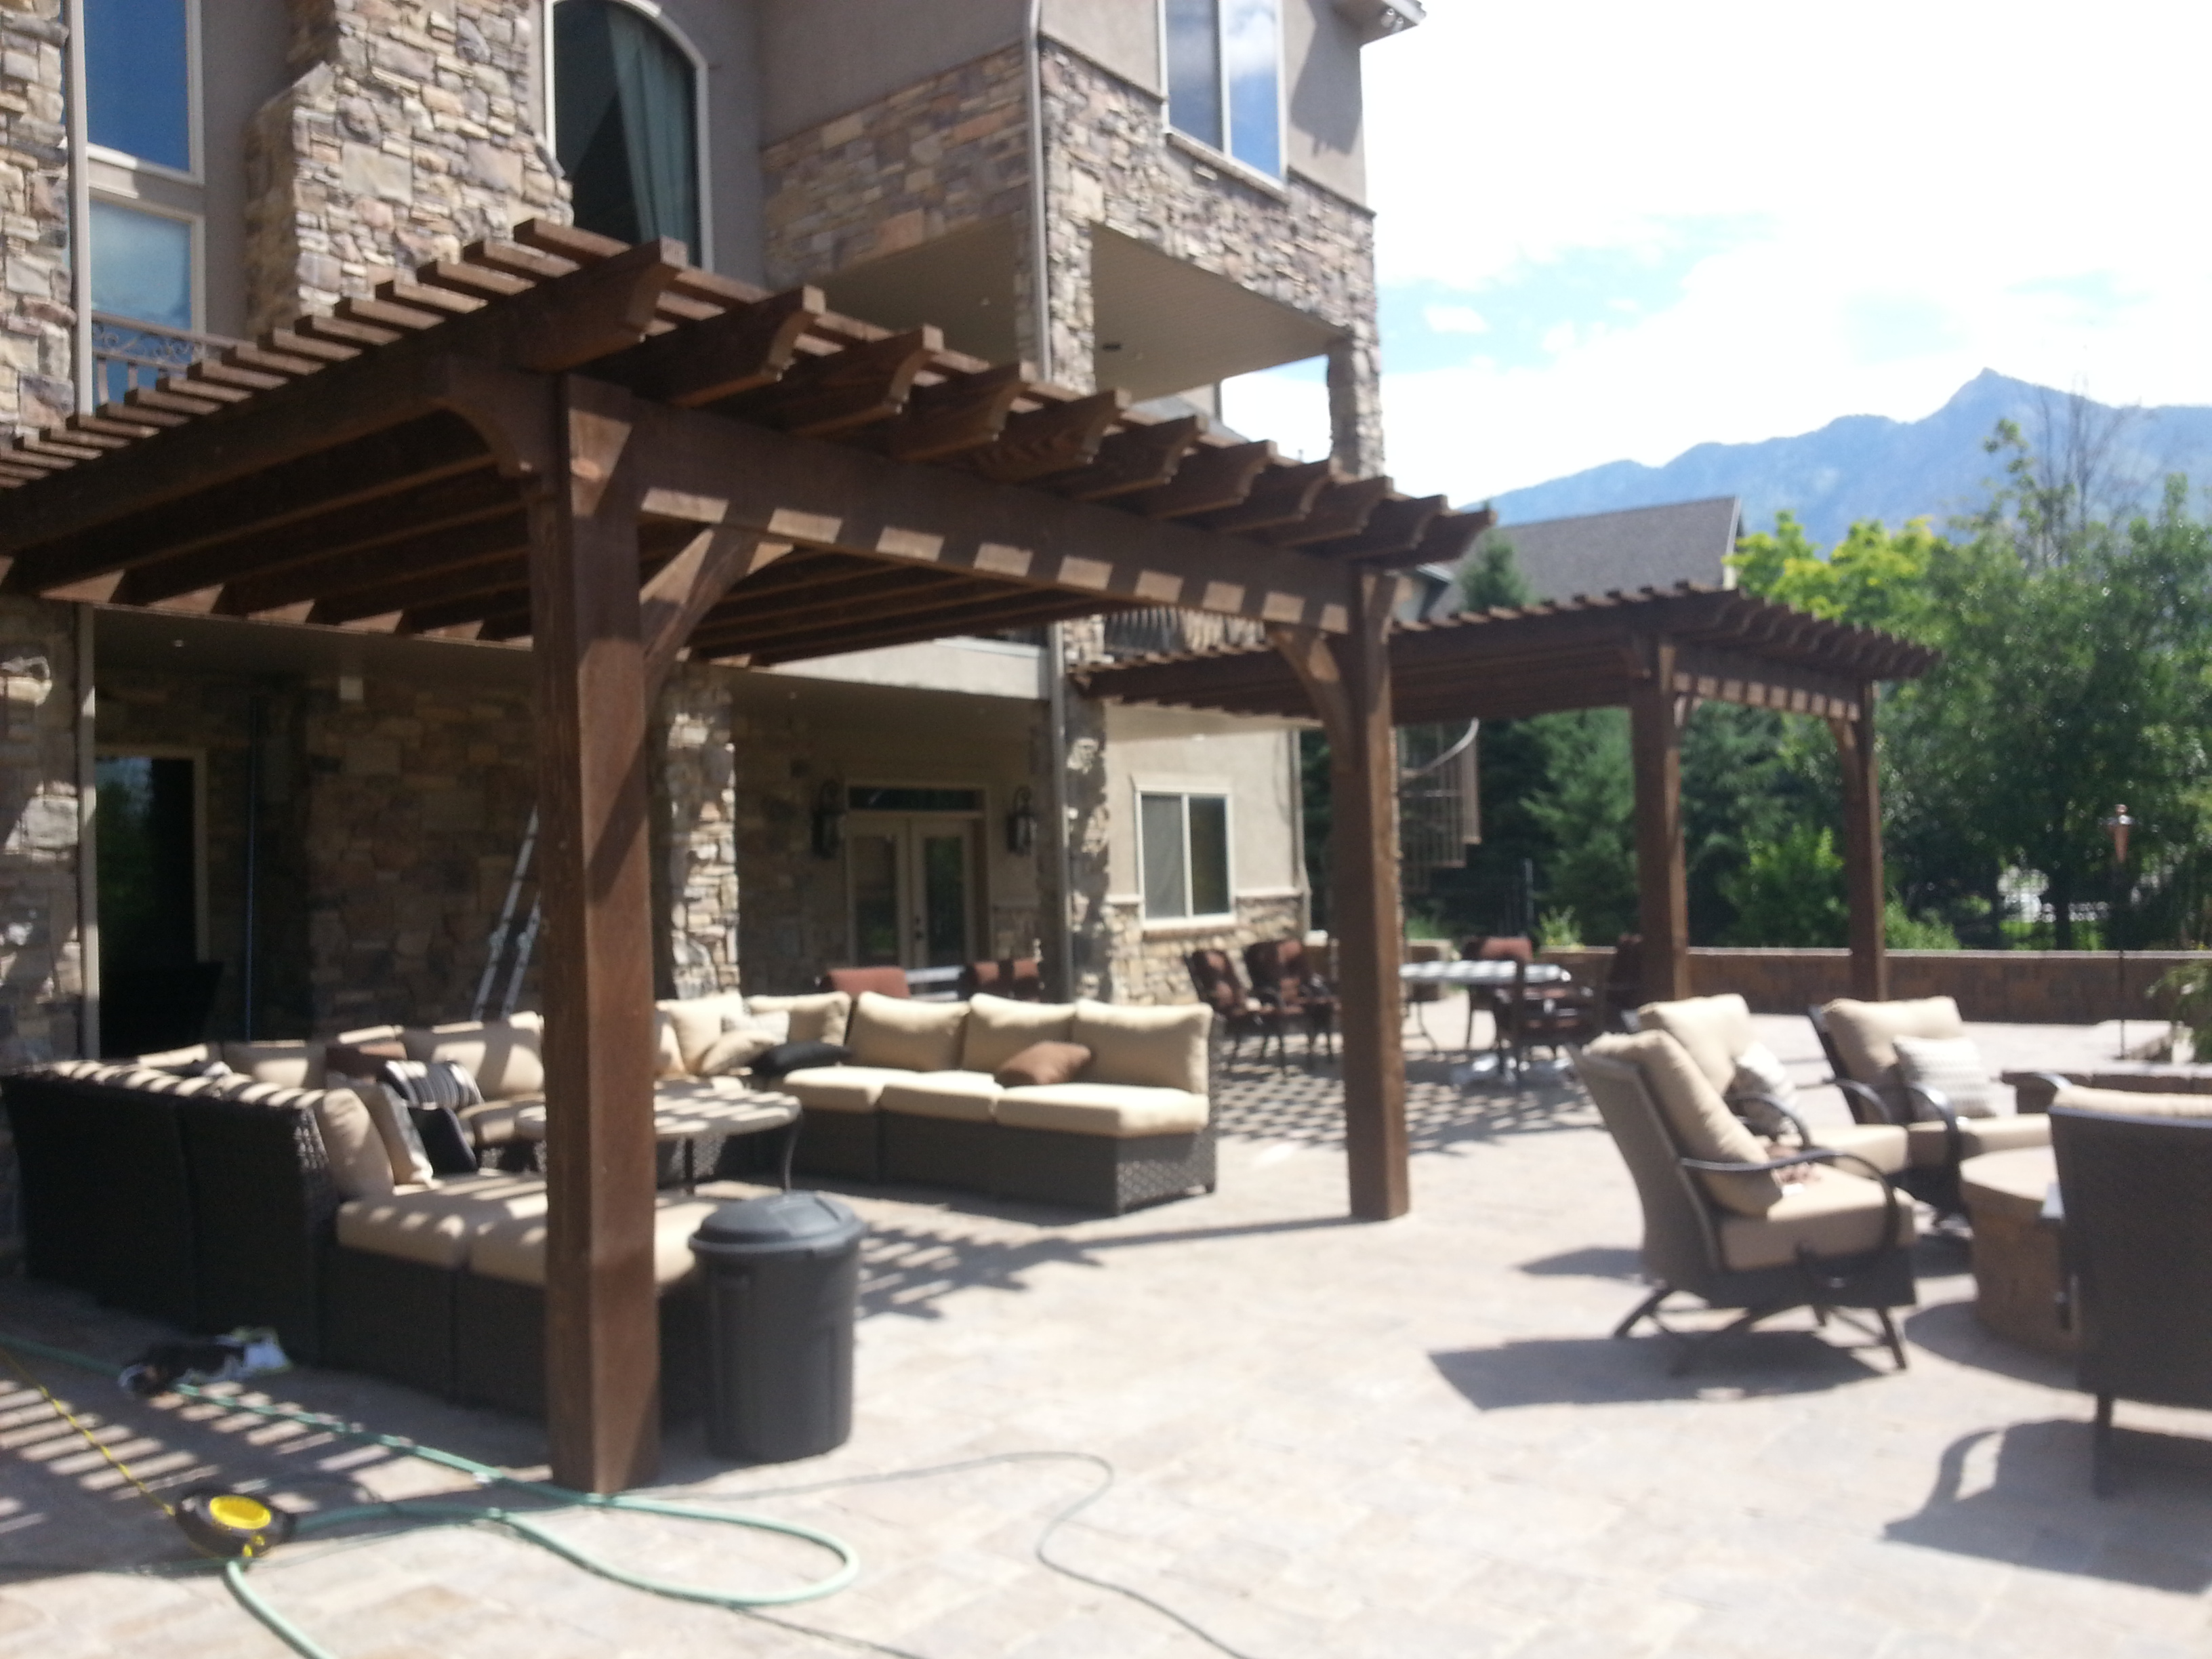 Amazing Pavers Around Pools, Paver Patios, Paver Walkways, Paver Walls, Paver Fire  Pits, Paver Steps, Front Walkways And Pathways In Utah And The Landscaping